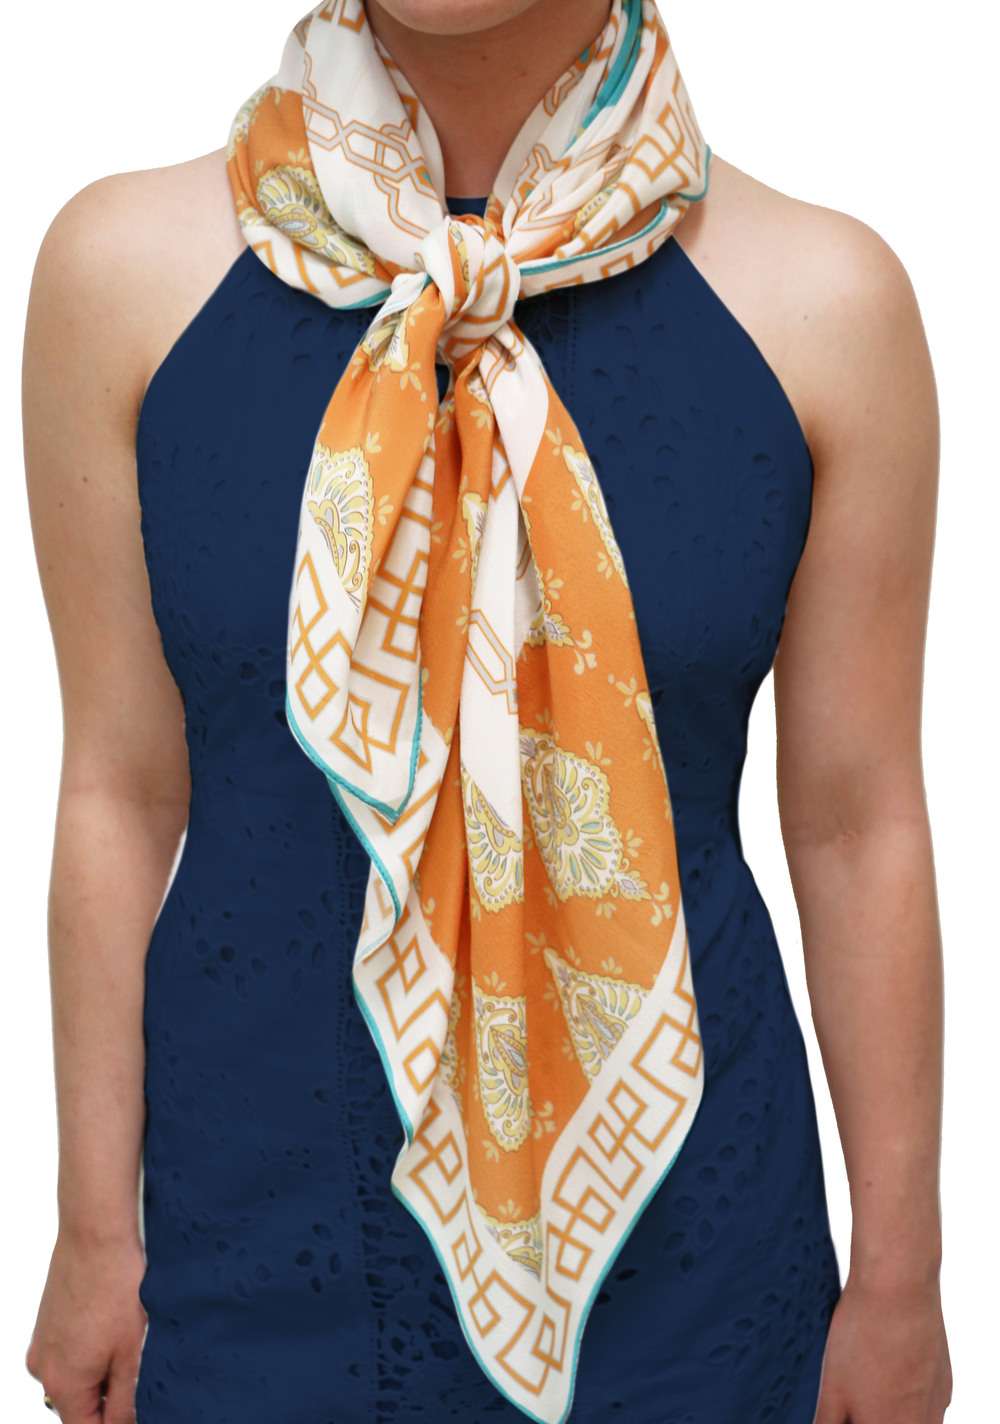 The Turks & Caicos Scarf by Dena Designs